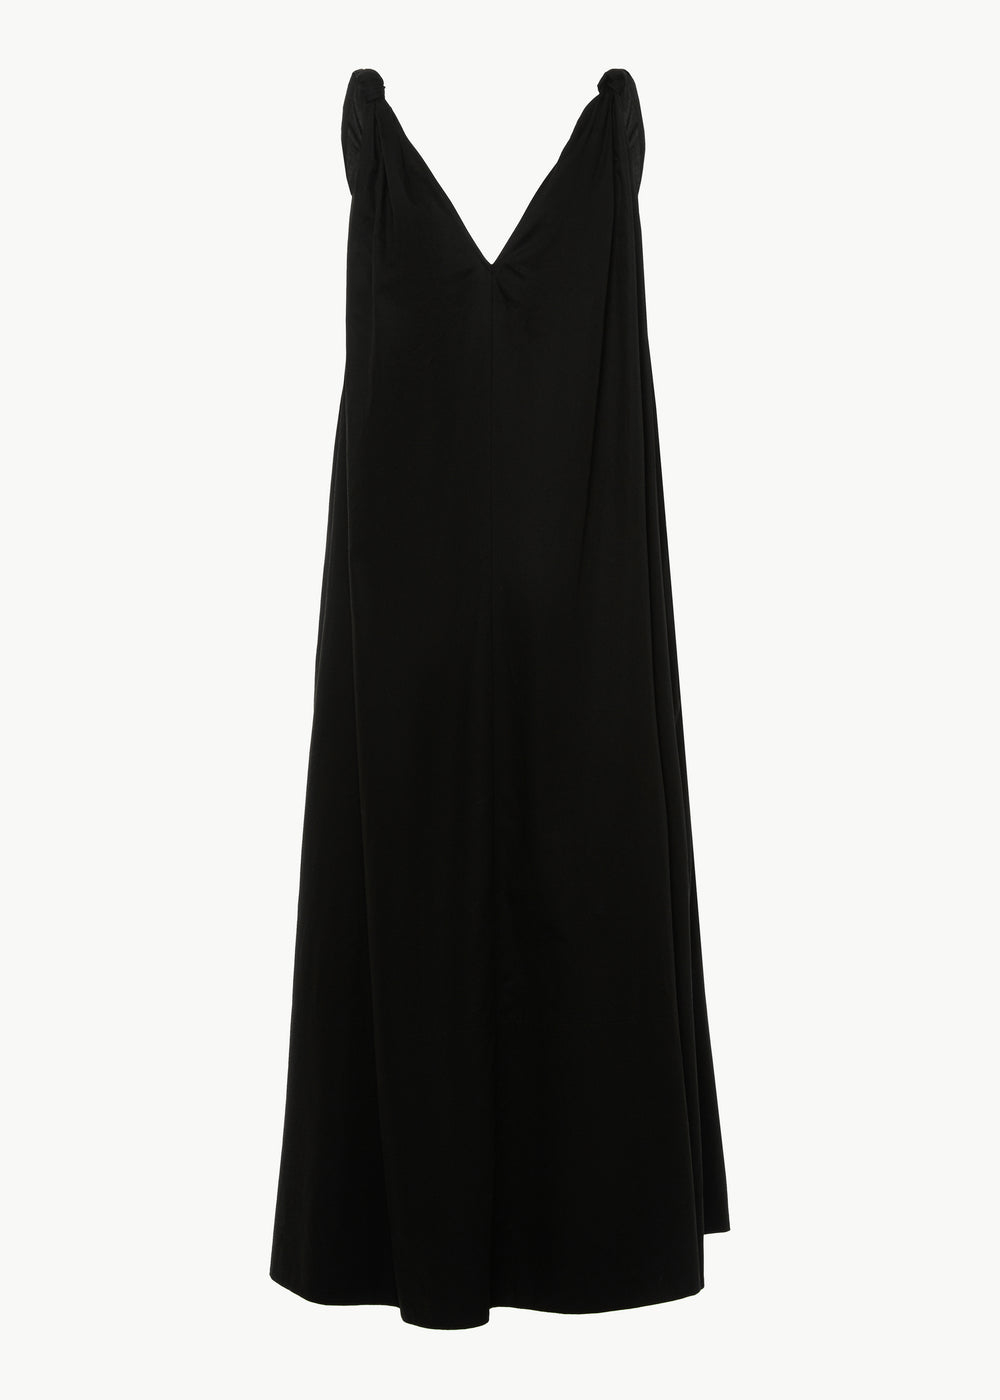 Knotted Strap Dress in Japanese Cotton - Black - CO